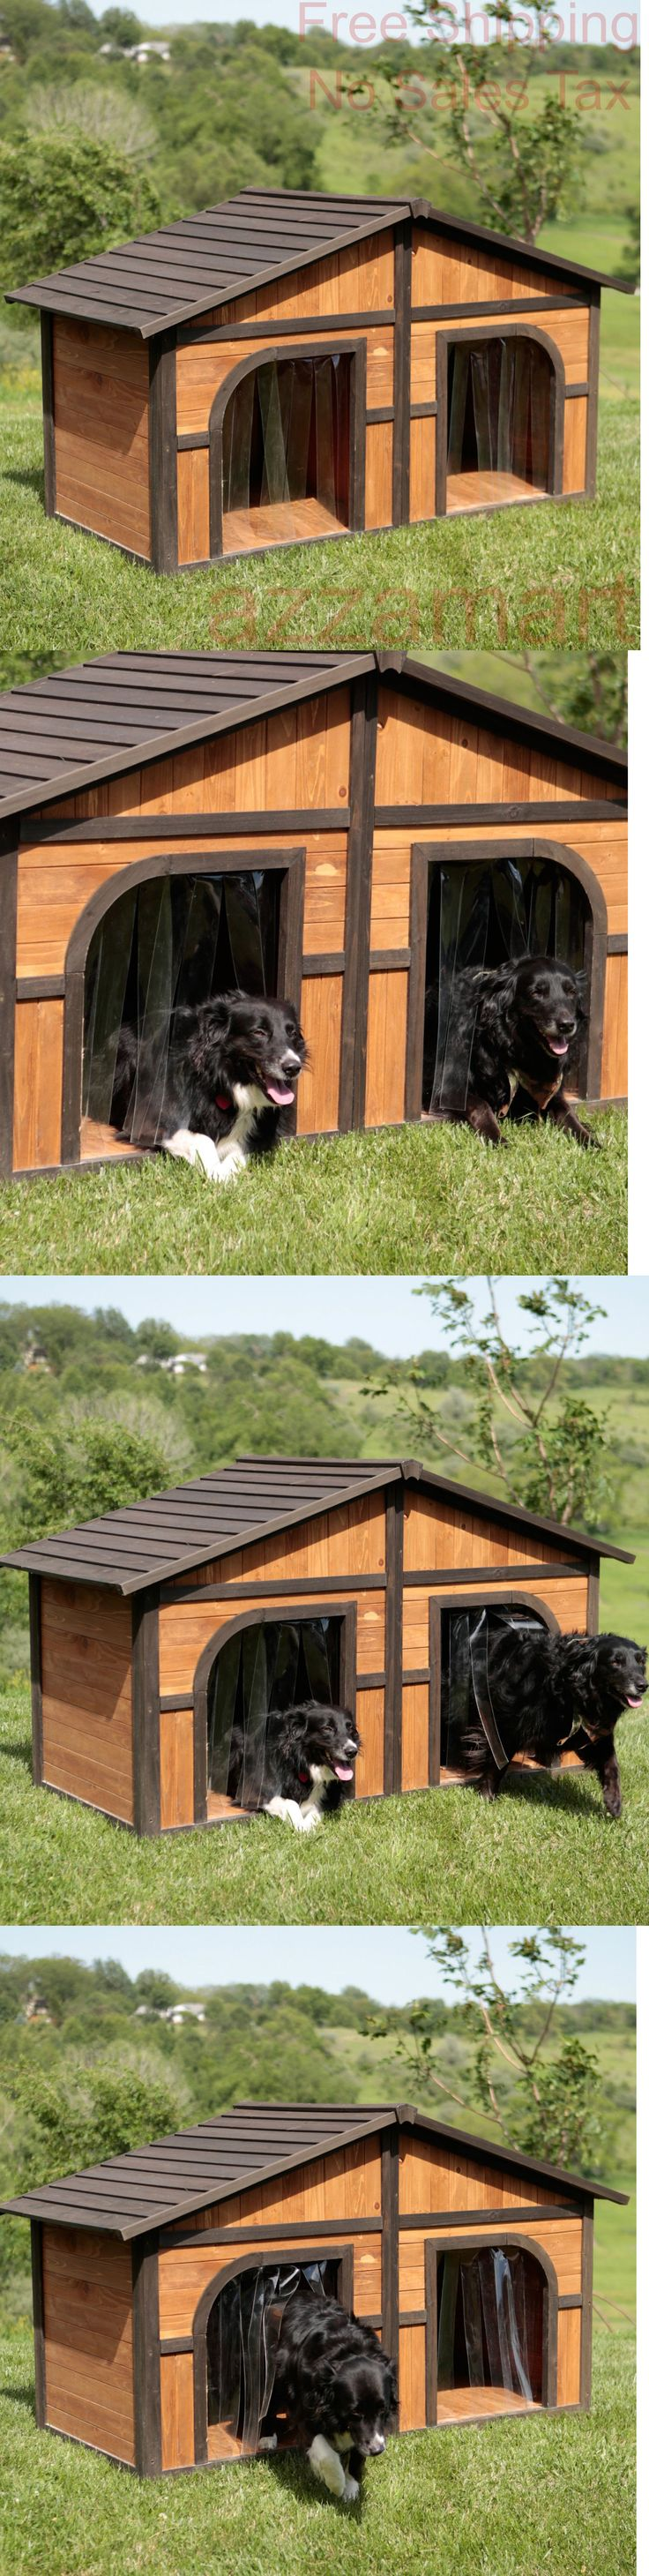 Dog Houses 108884: Double Dog House Extra Large Wood Duplex Outdoor Pet Shelter Cage Kennel Xl New BUY IT NOW ONLY: $387.63